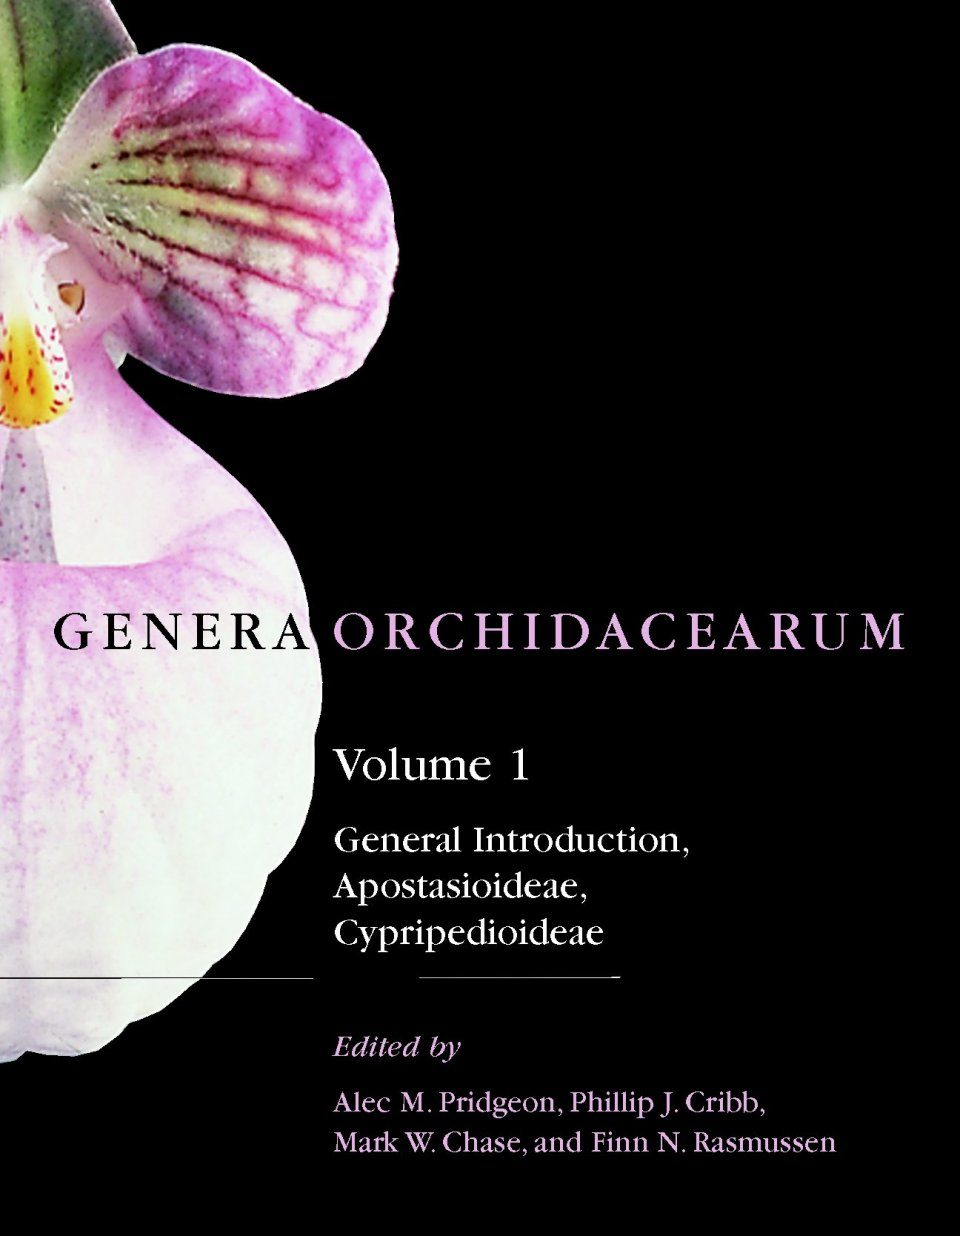 Genera Orchidacearum, Volume 1: General Introduction, Apostasioideae and Cypripedioideae